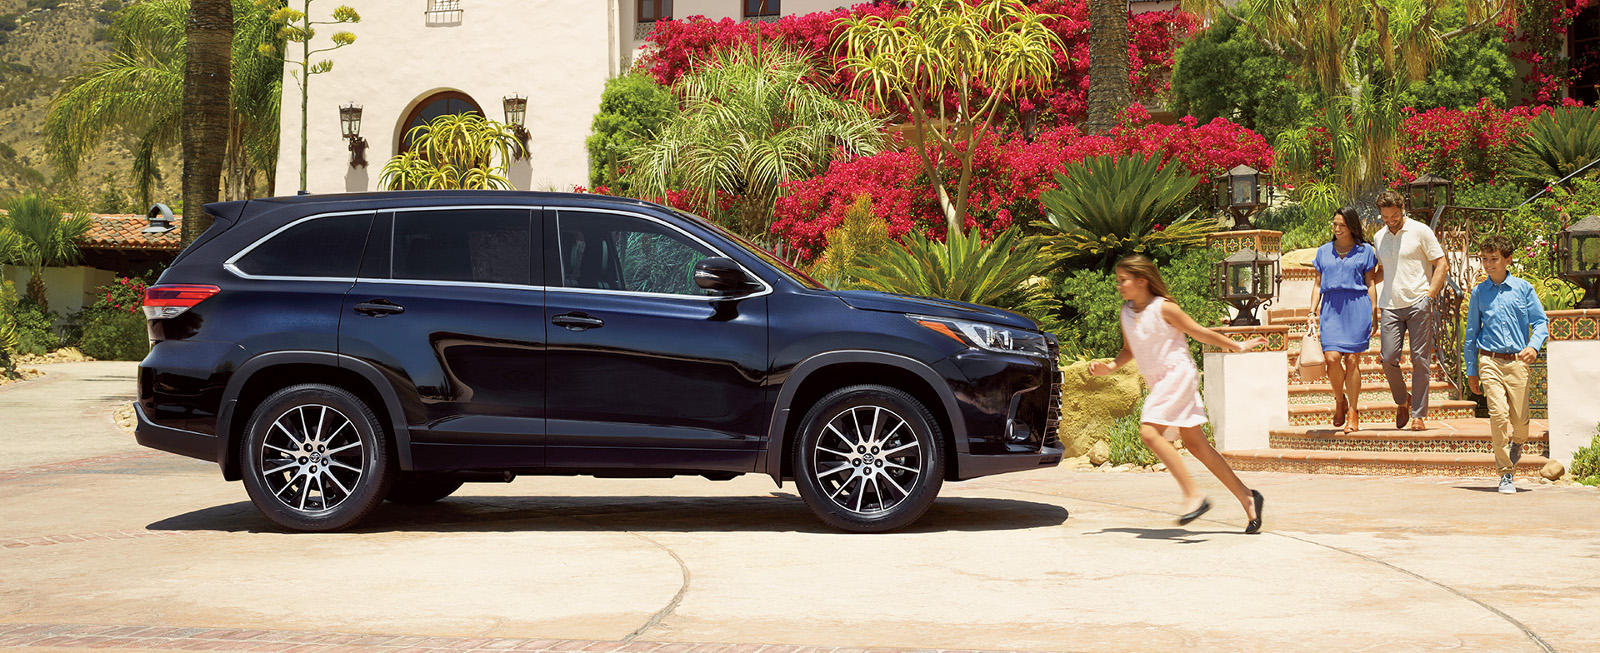 2017 toyota highlander trim levels take your pick. Black Bedroom Furniture Sets. Home Design Ideas